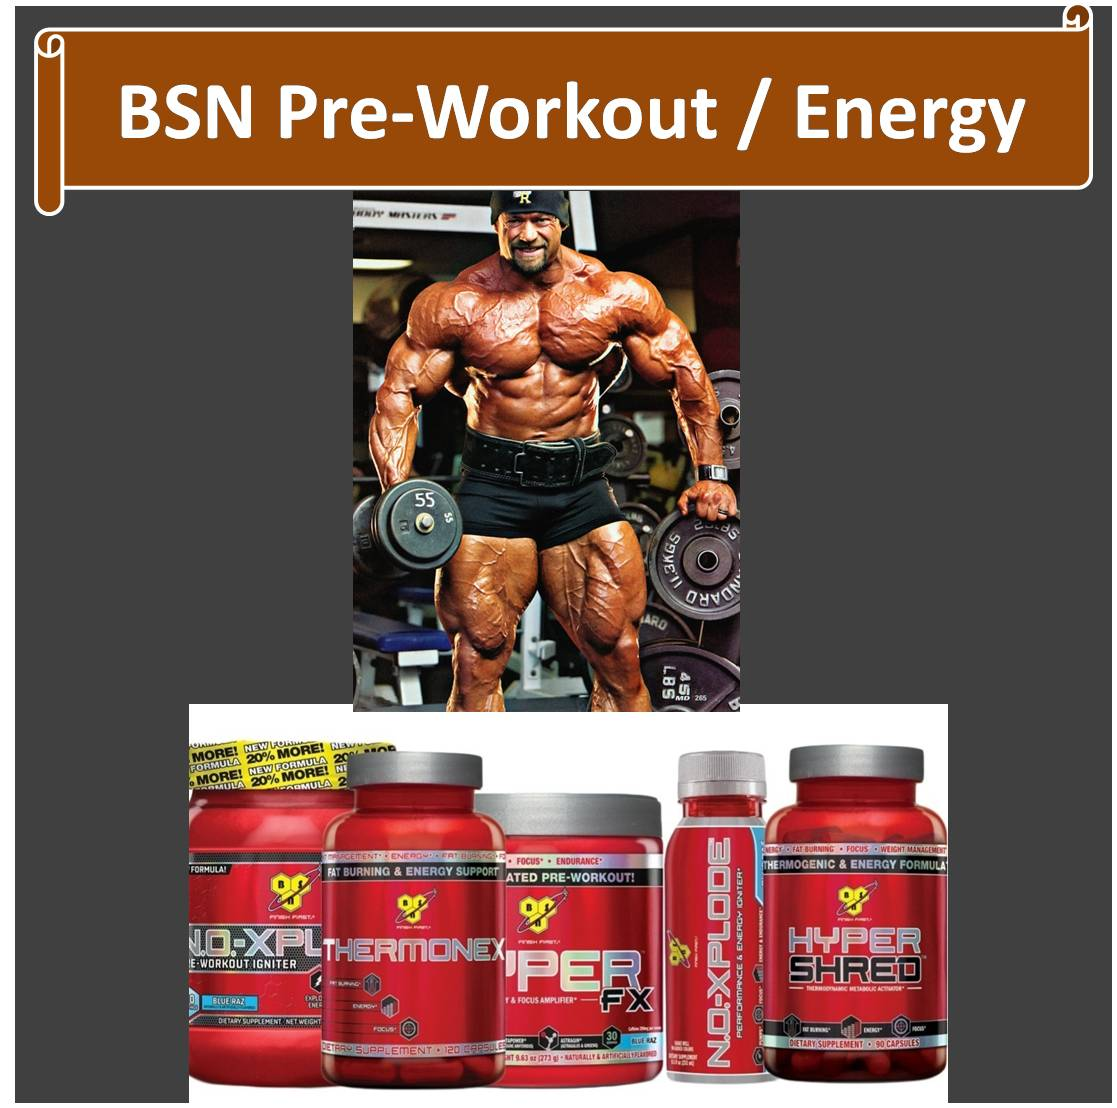 BSN Pre Workout Energy